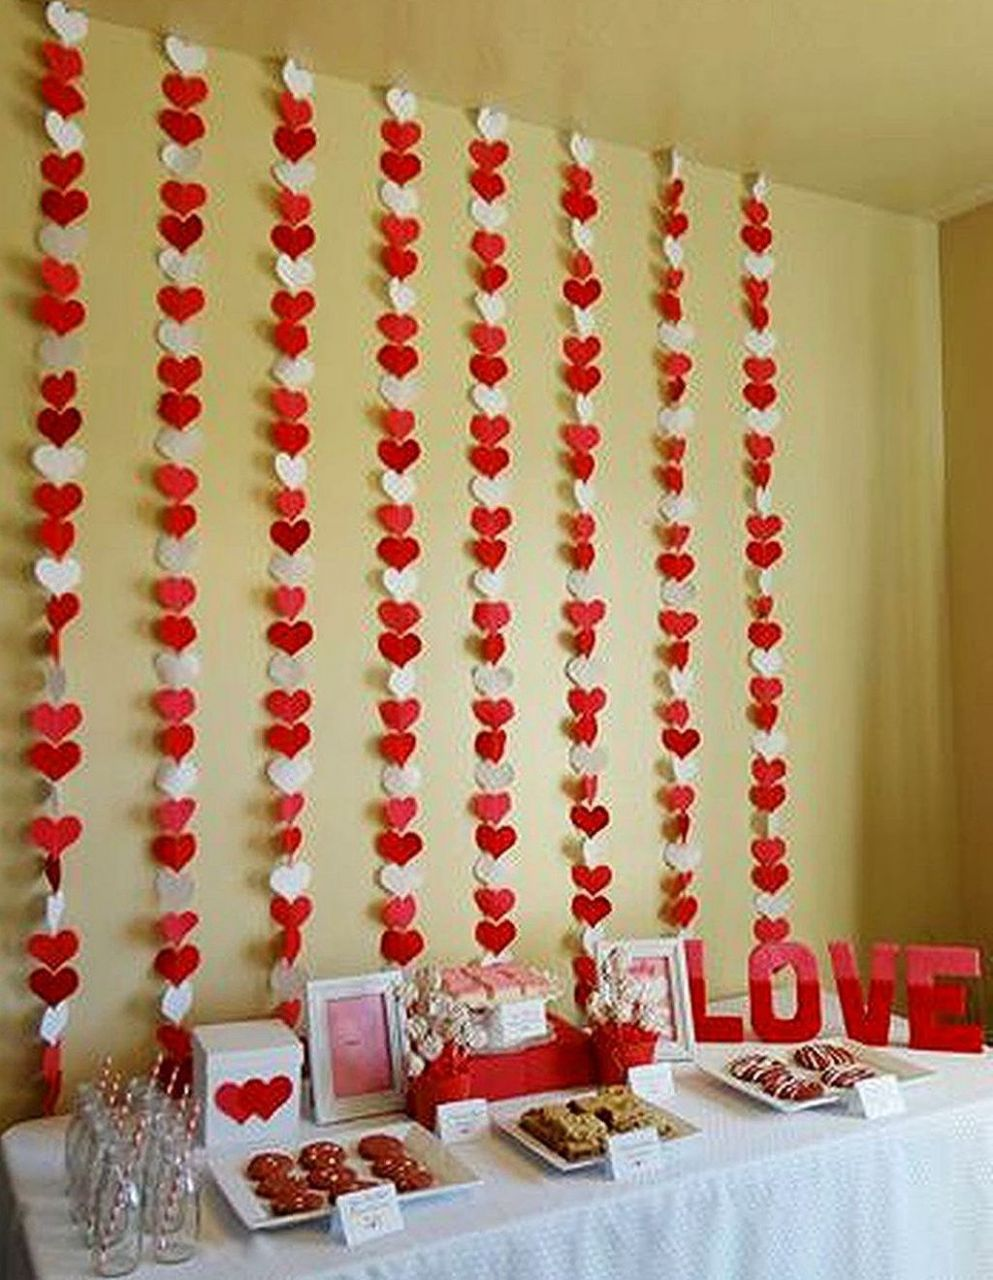 11 Gorgeous Valentine Wall Decor To Beautify Your Home in 11 ..